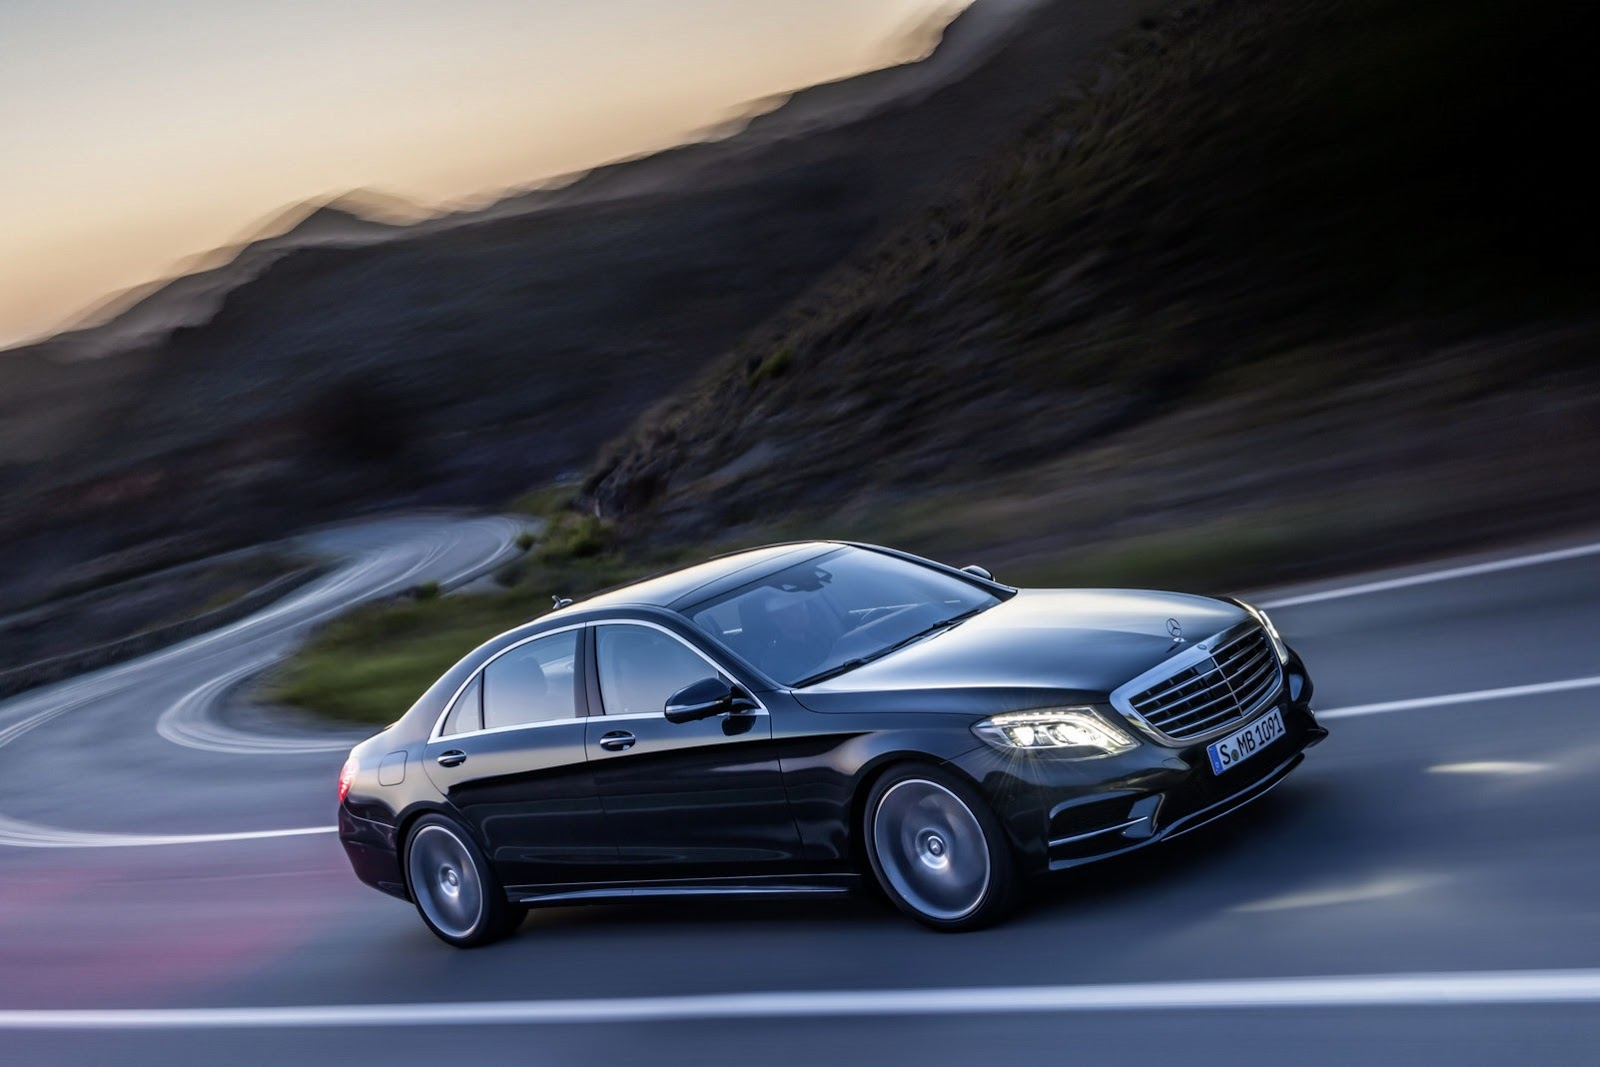 2014 Mercedes Benz S-Class - SMADE MEDIA (53)